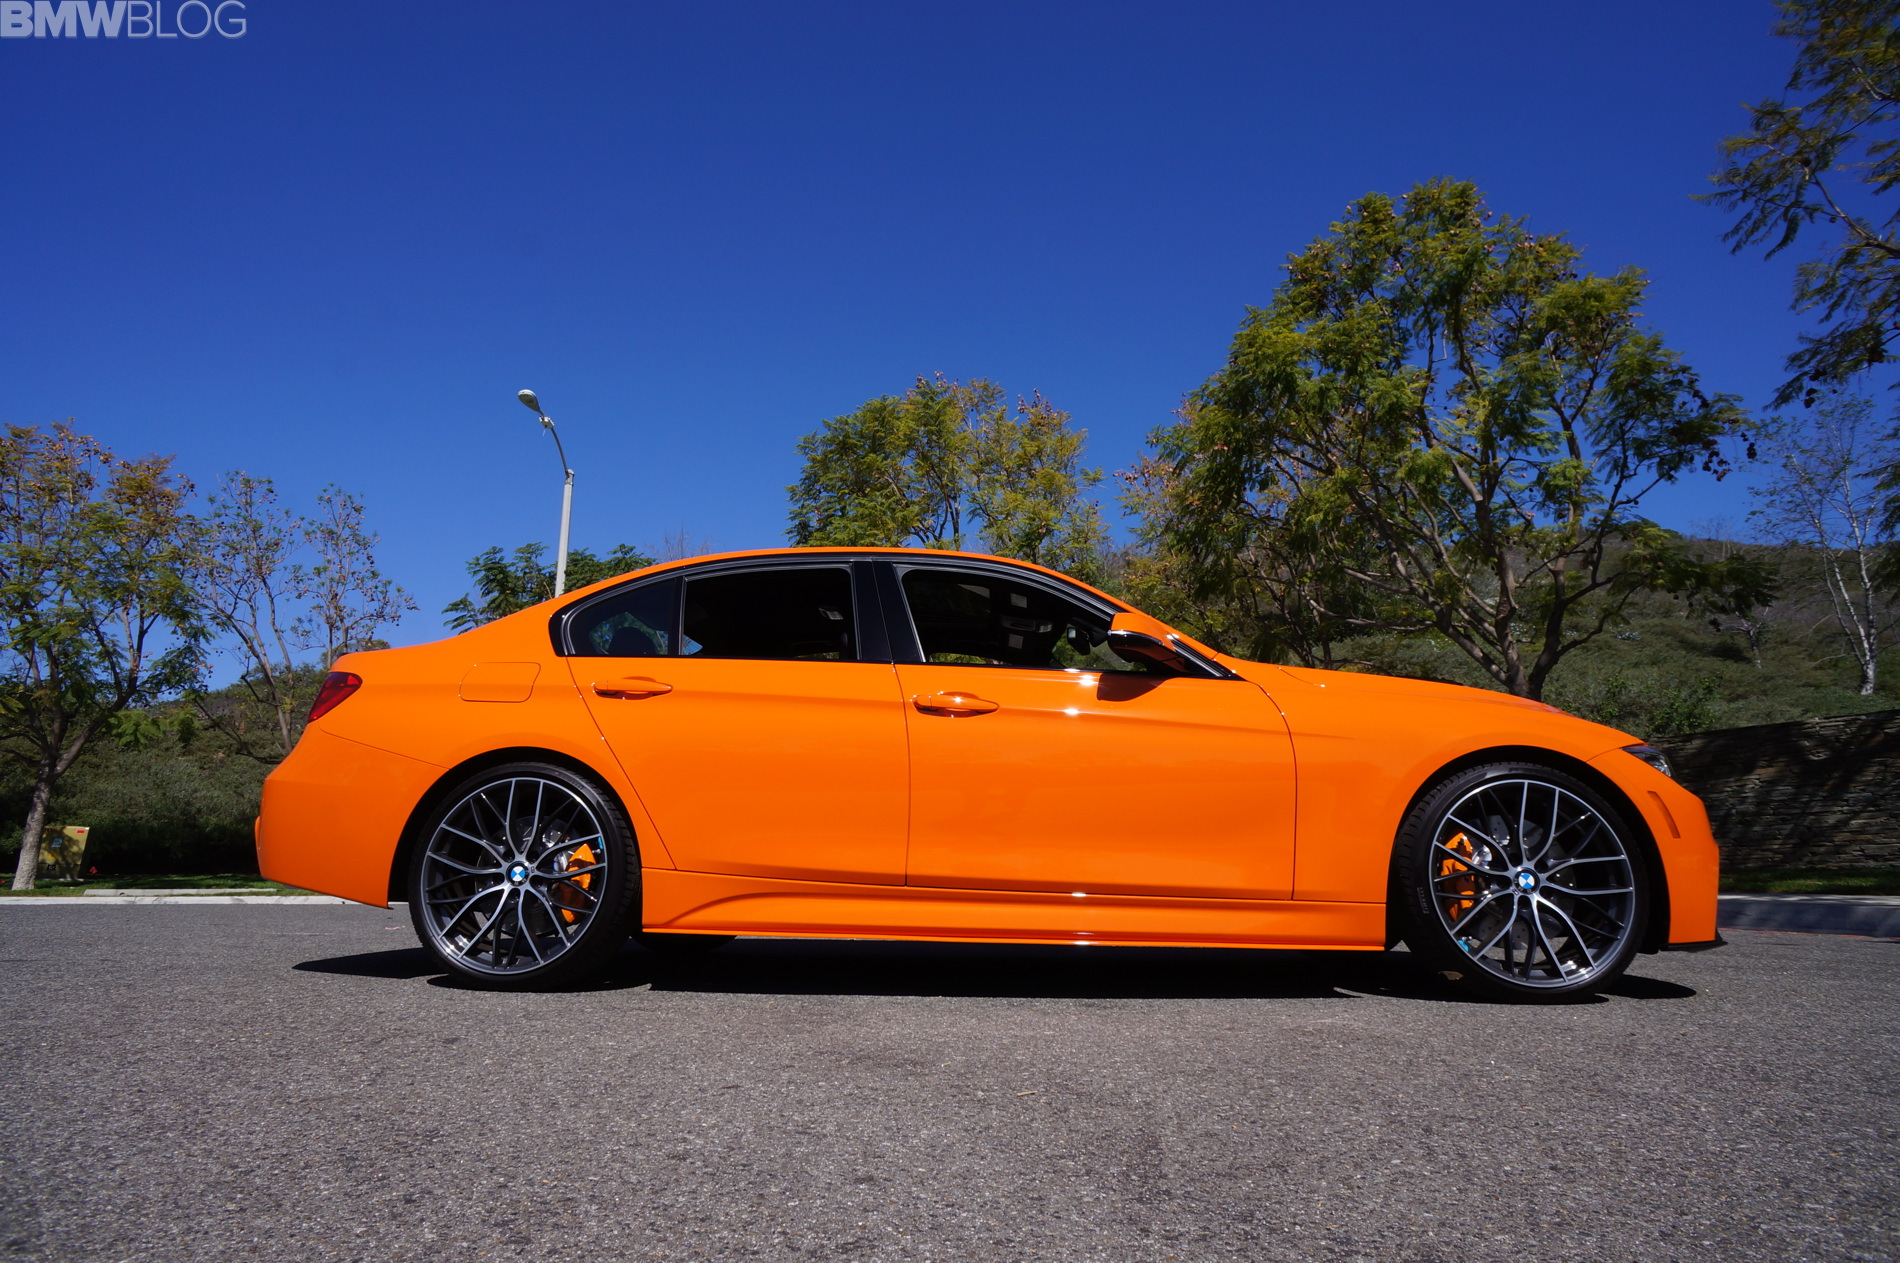 Fire Orange BMW 335i with manual transmission